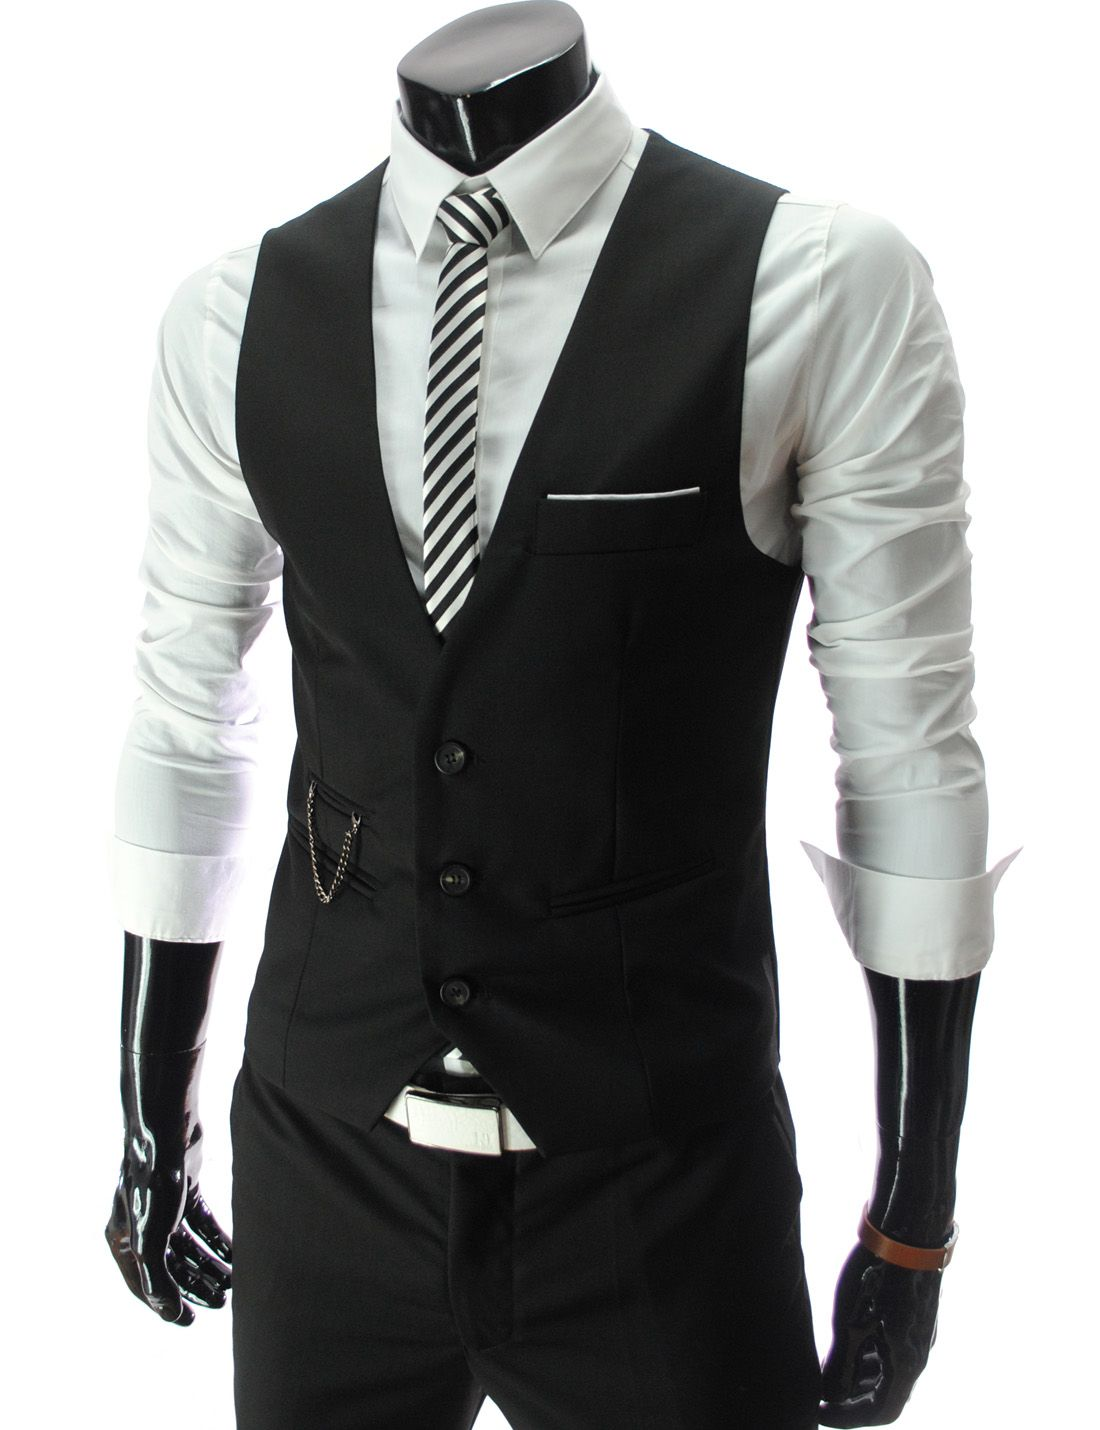 Slim Fit Three Button Vest In Black Larry Just Got This And It Looks So Good On Him With Or Without His Suit Mens Suit Vest Mens Outfits Business Suit Vest [ 1430 x 1100 Pixel ]